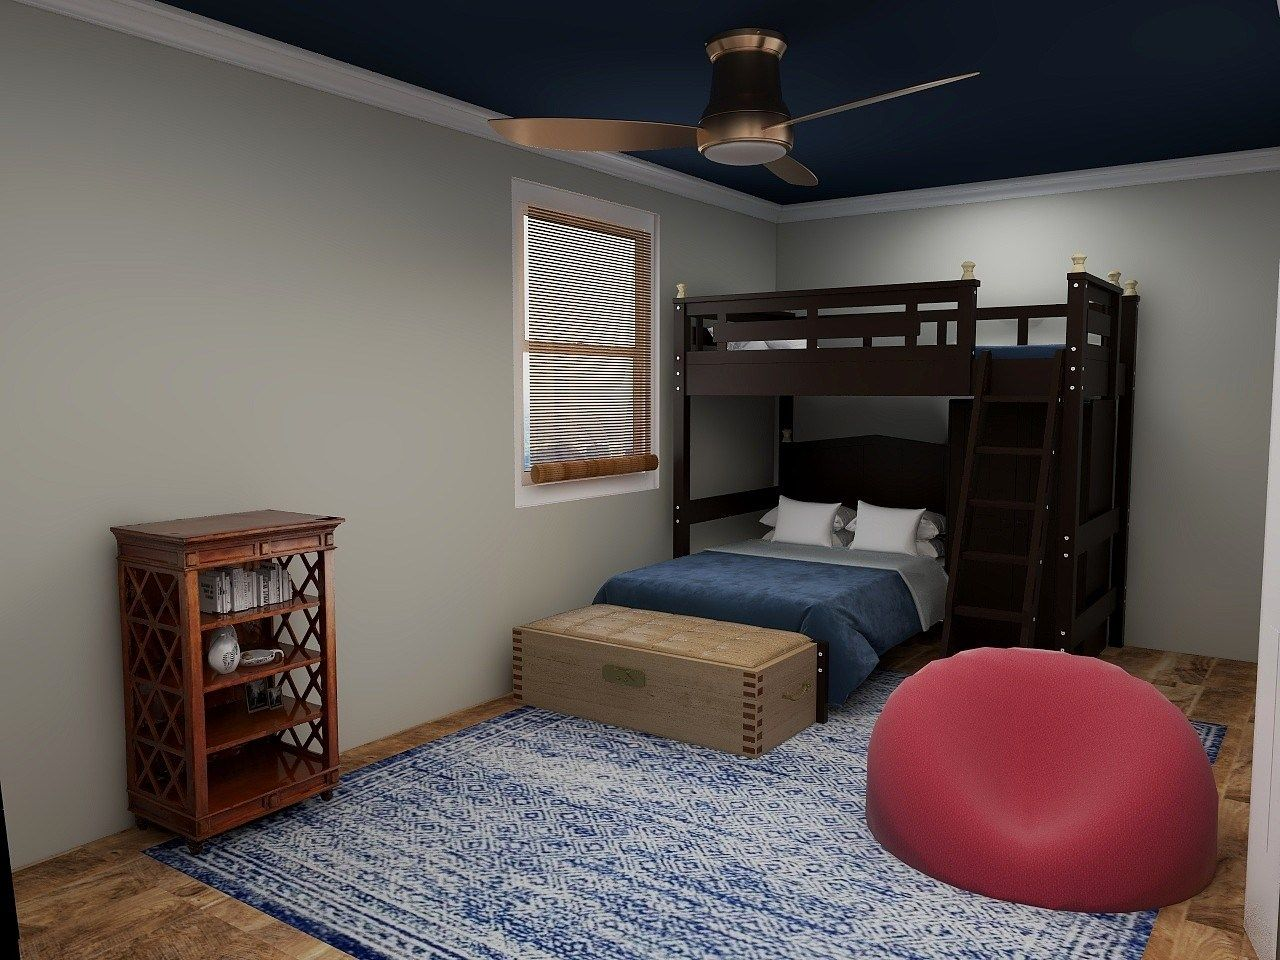 blue and lively child's bedroom bunk beds oversized rug in navy and white bean bag chair